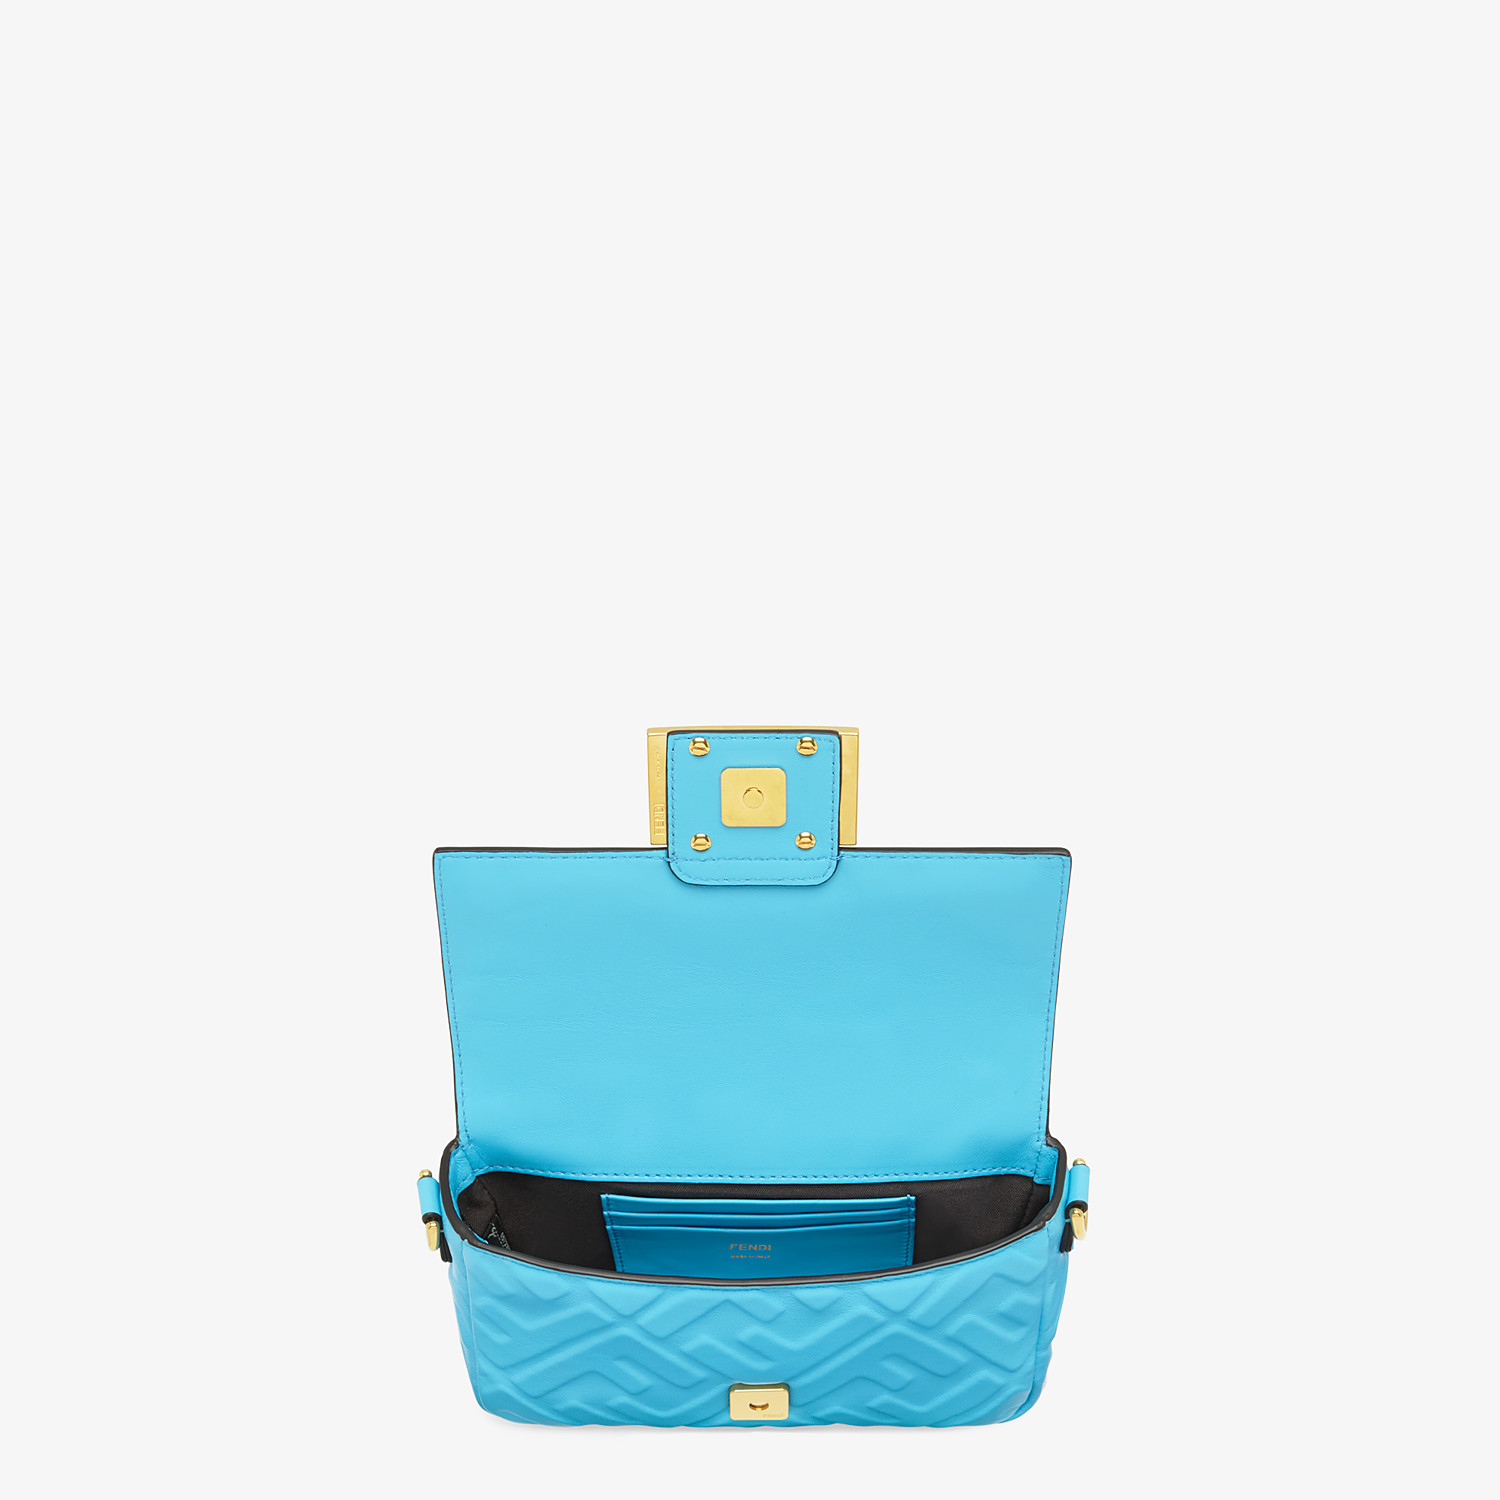 FENDI BAGUETTE - Light blue FF Signature nappa leather bag - view 5 detail